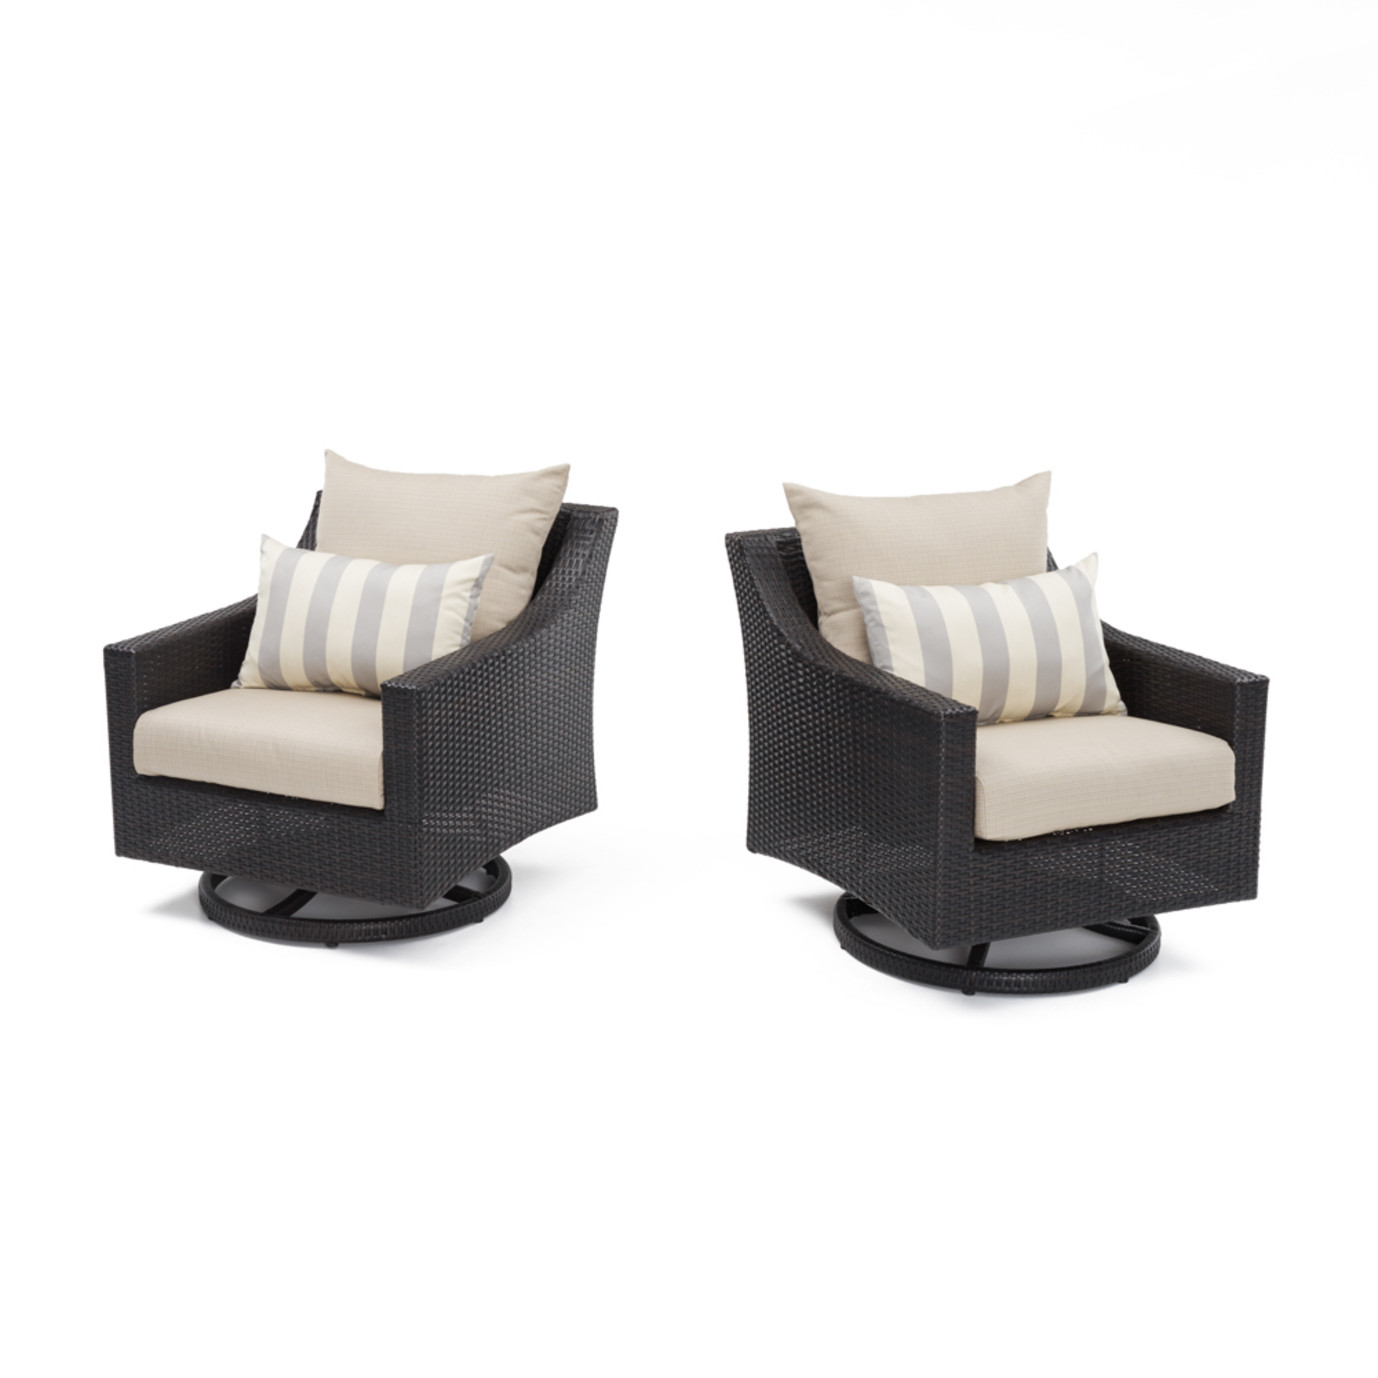 Deco™ Motion Club Chairs in Slate Grey